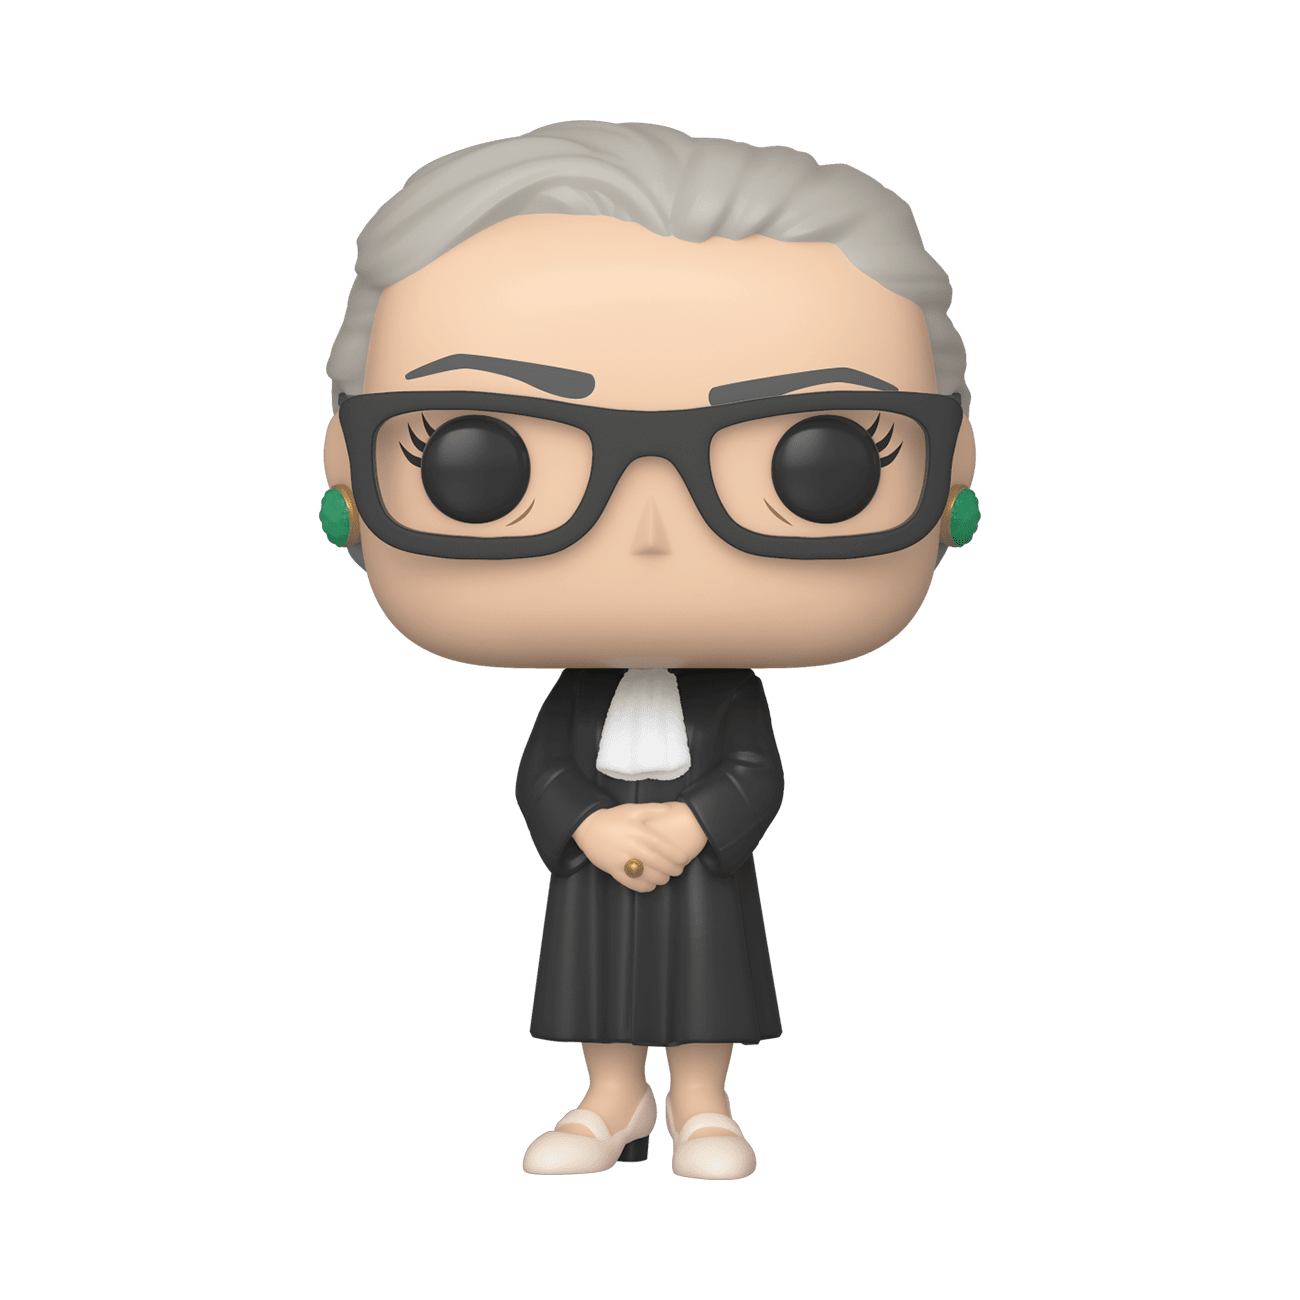 IMAGE(https://www.funko.com/craftmin/products/44336_Icon_RuthBaderGinsburg_POP_RENDERS_GLAM_WEB-98412fe26777071f4b1db6347c428ba8.png)